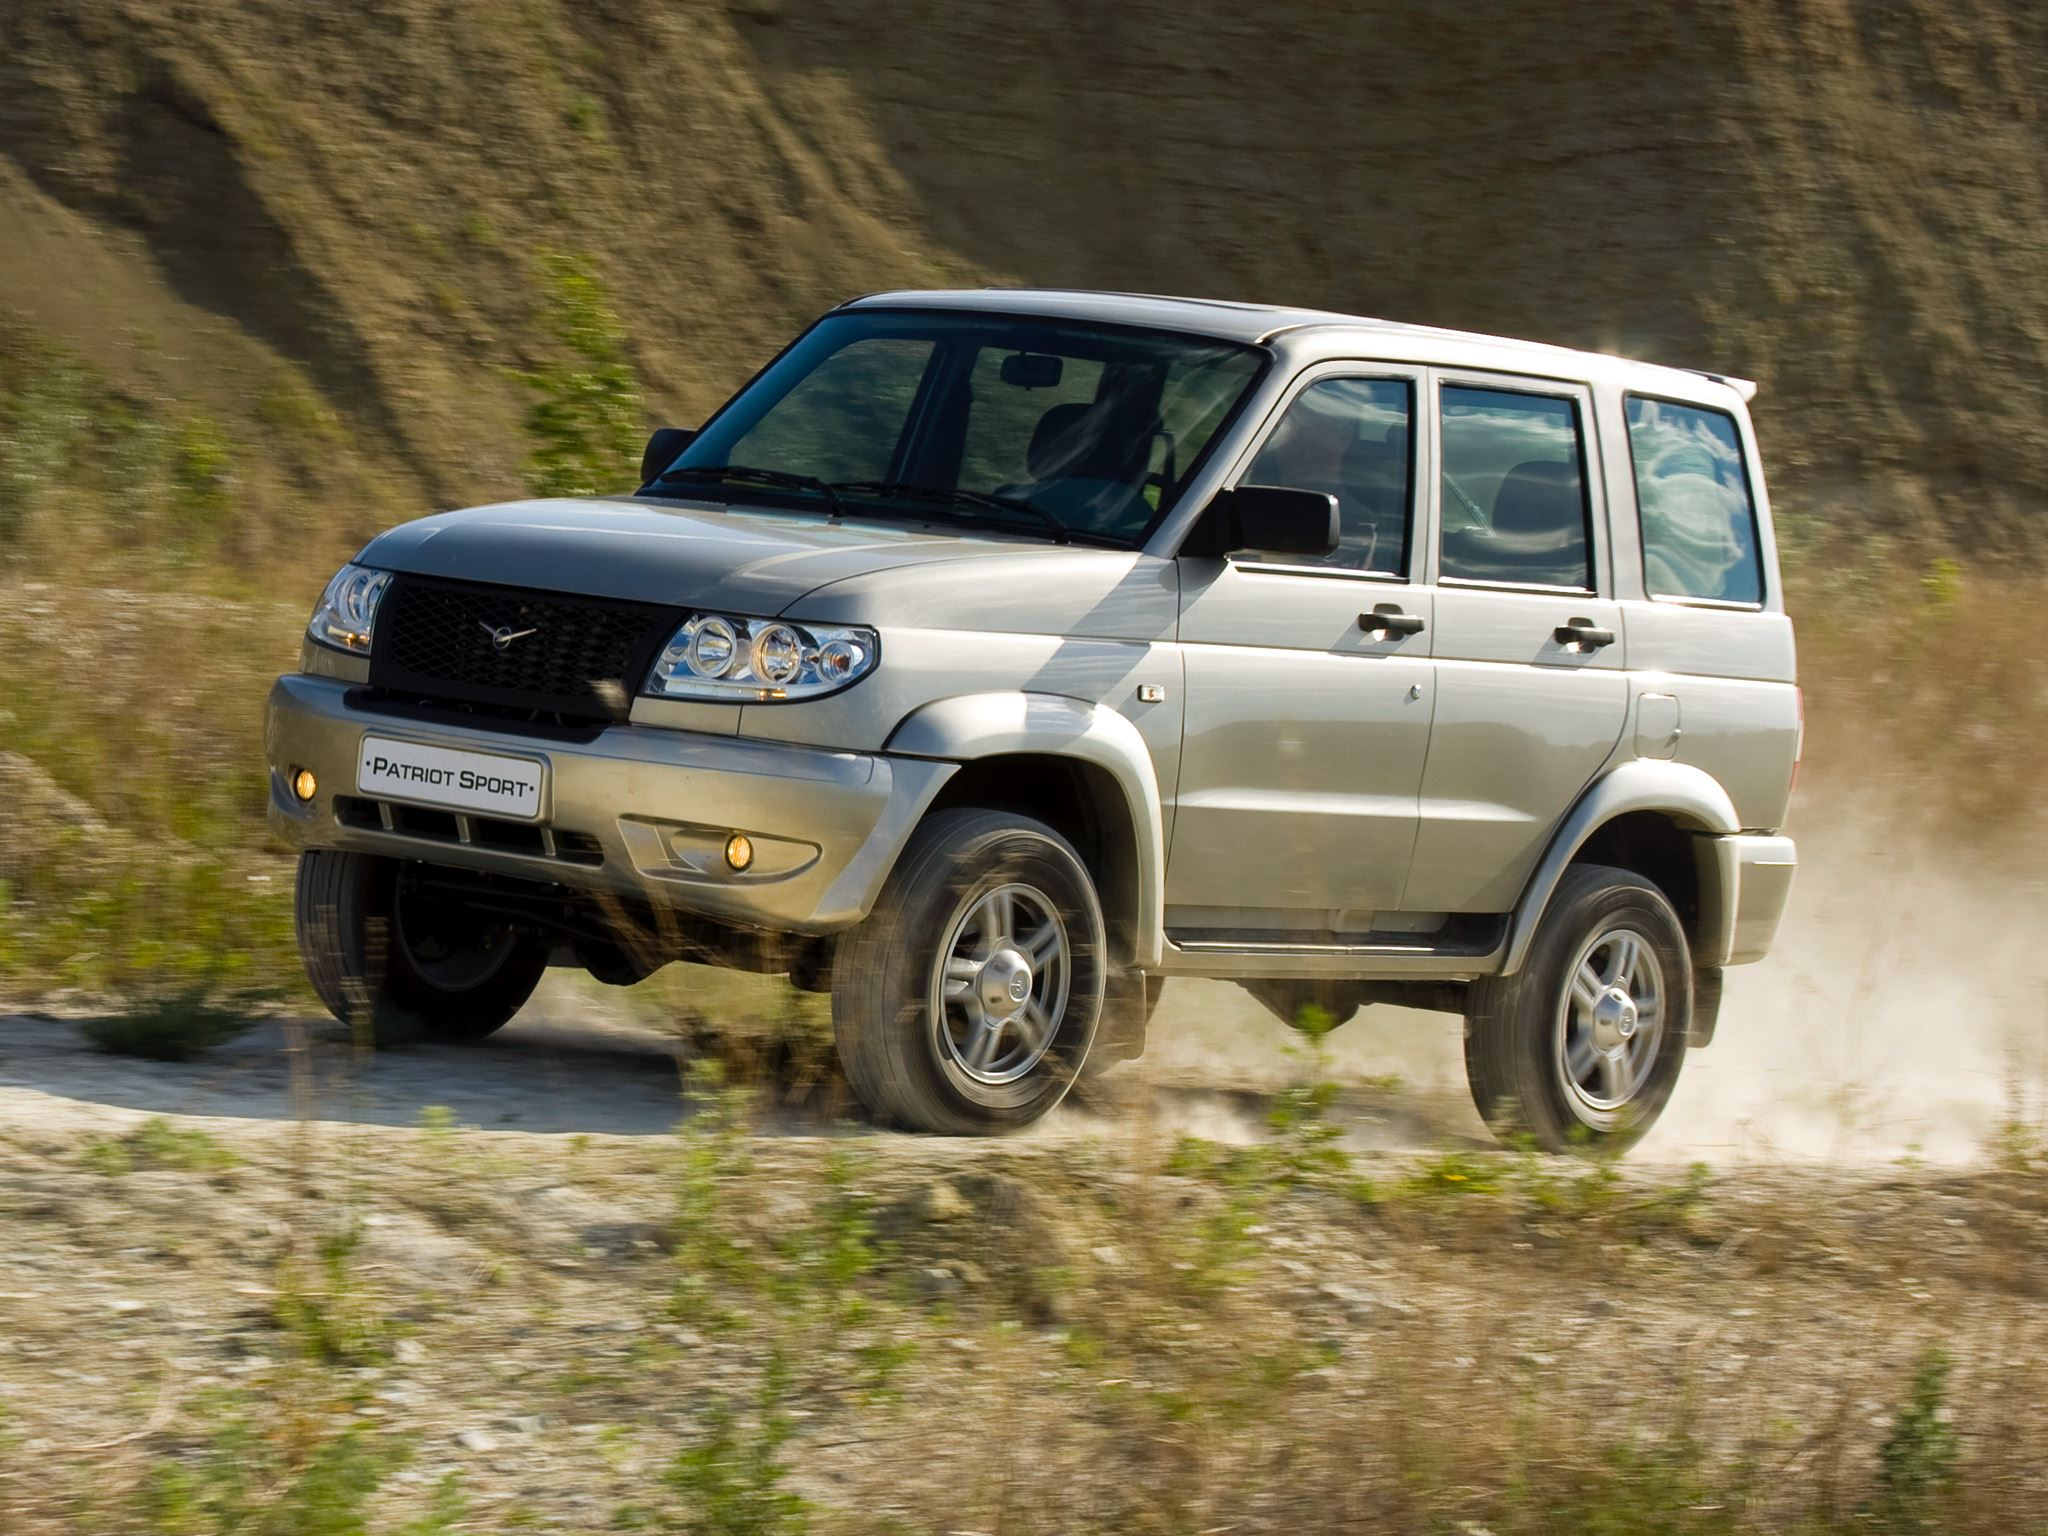 Craigslist Nissan Frontier >> Rare Rides: A UAZ From 1991 Brings the Iron Curtain to the Midwest